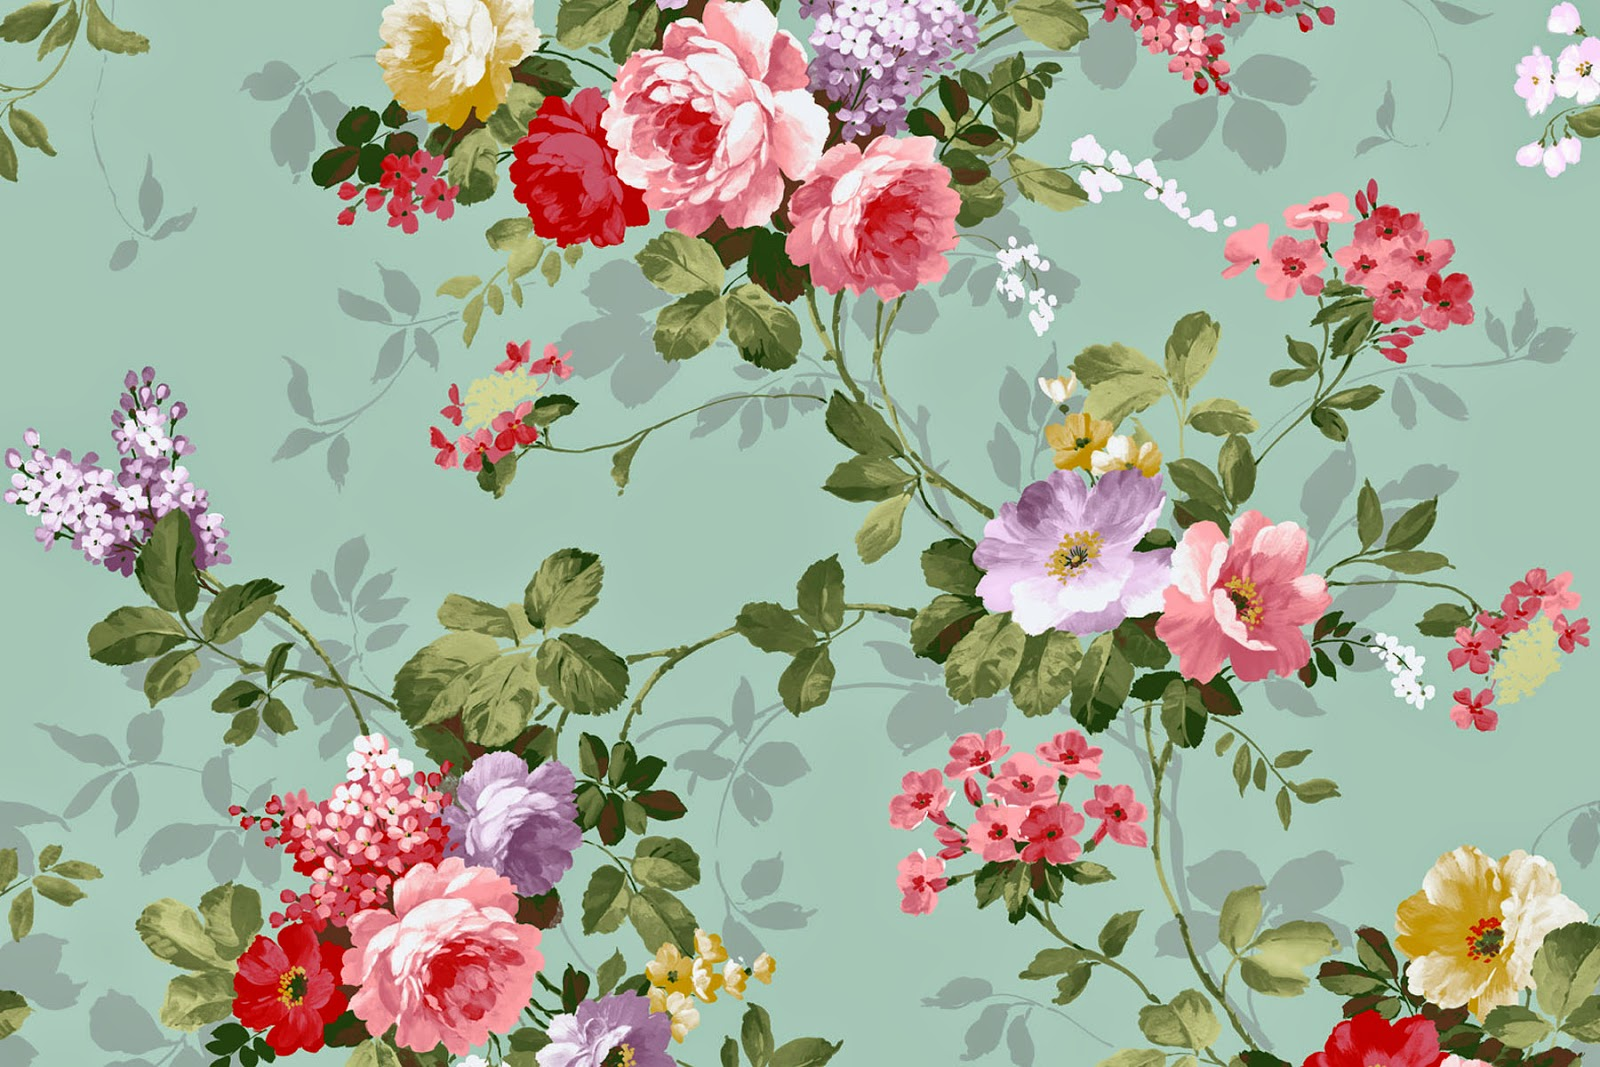 Floral Wallpaper Doodlecraft Vintage Floral Wallpaper Freebies